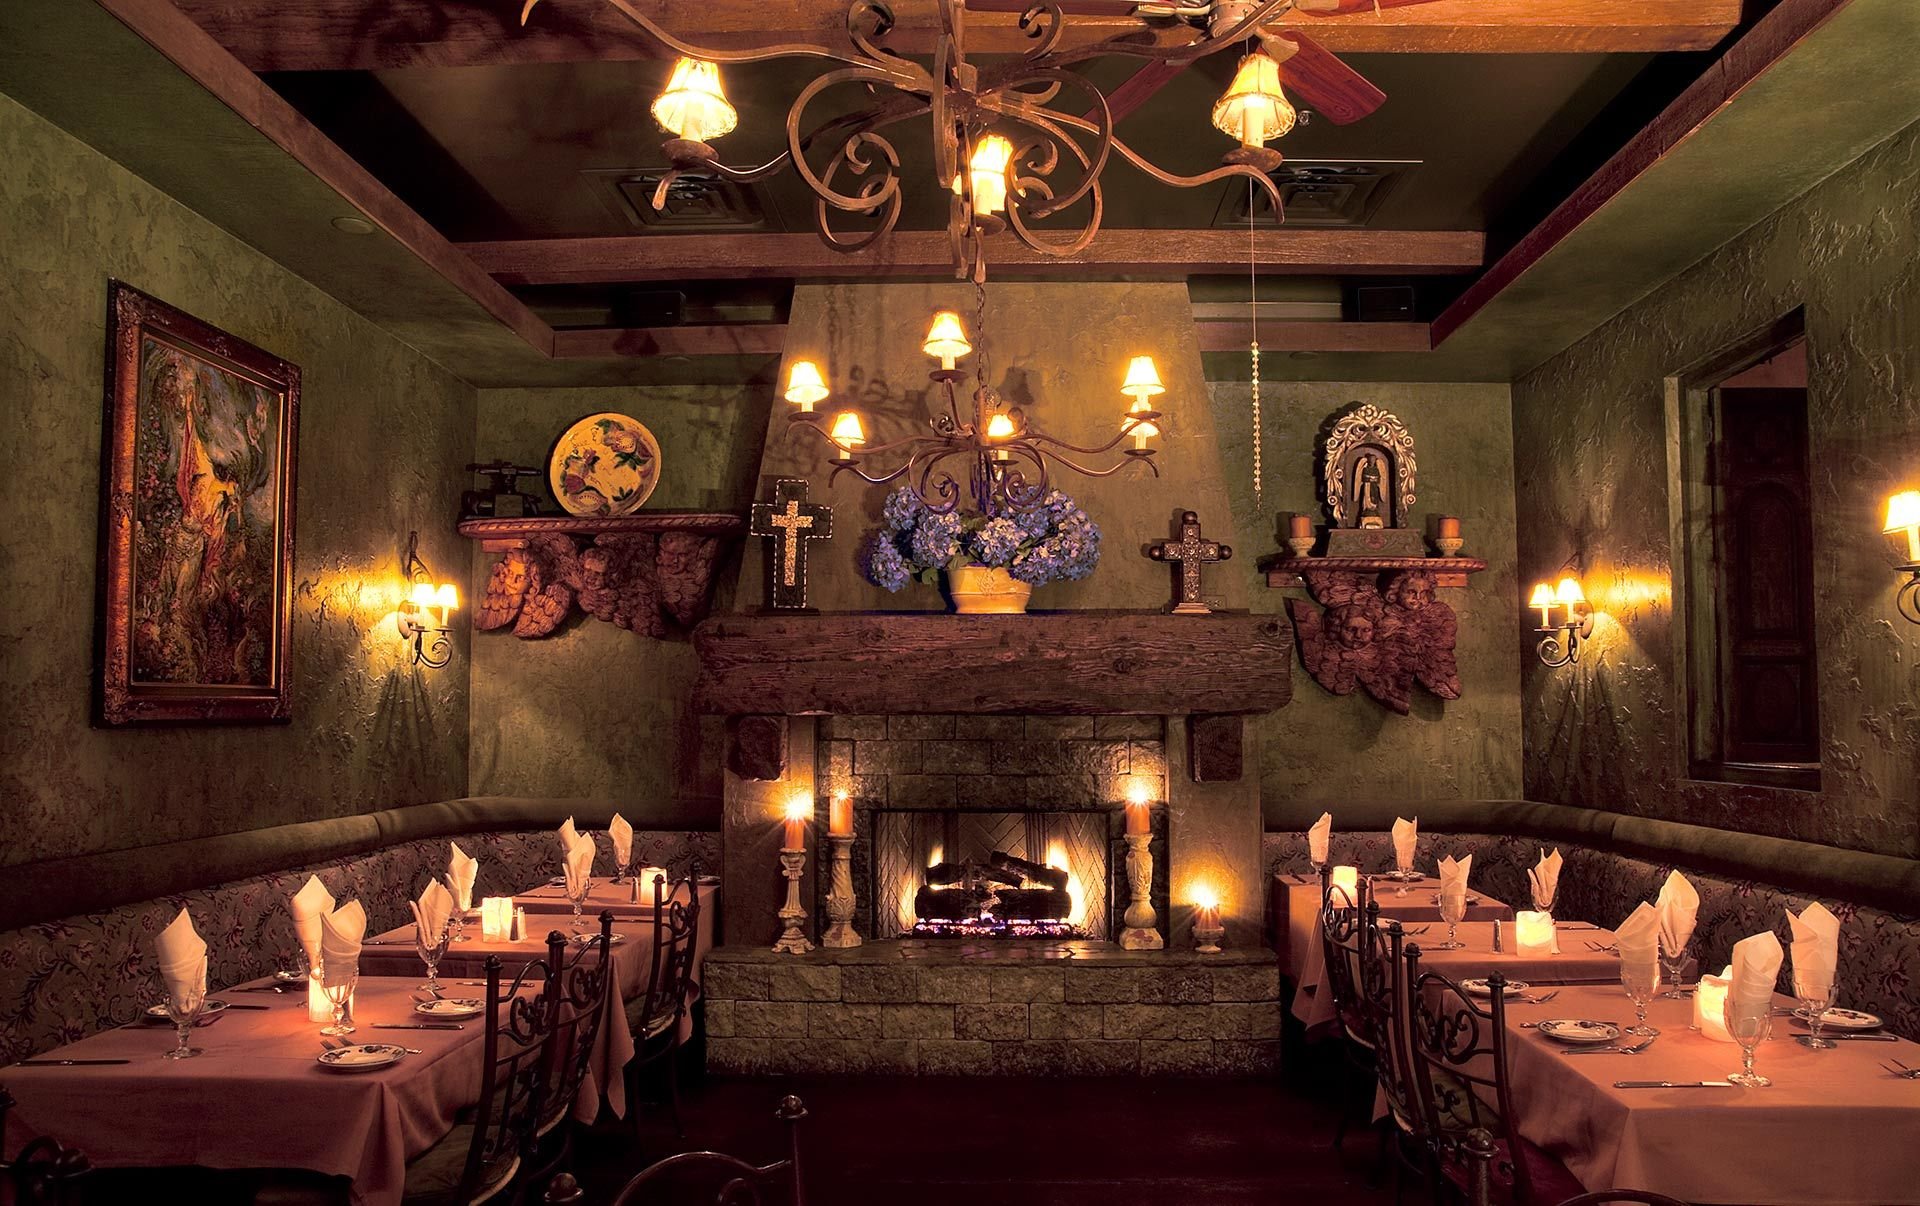 Cucina Restaurant Sedona Az Rustic Italian Kitchen Cucina Rustica Memorable